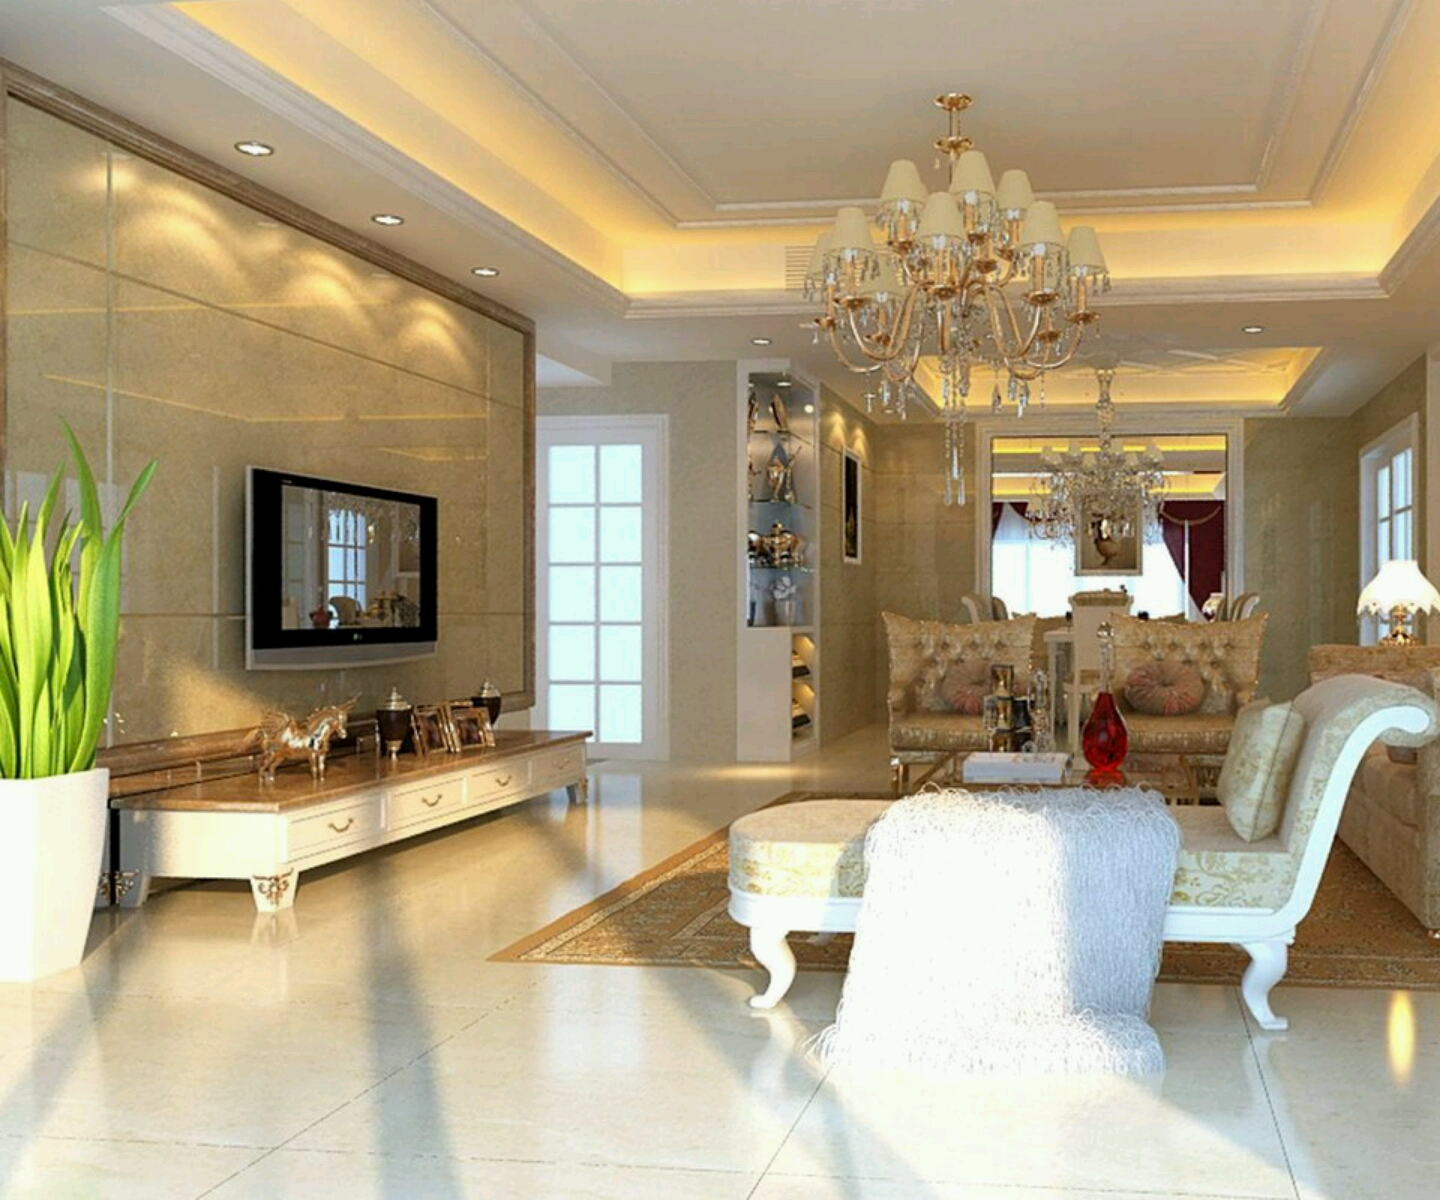 New home designs latest luxury homes interior decoration for Different interior designs of houses